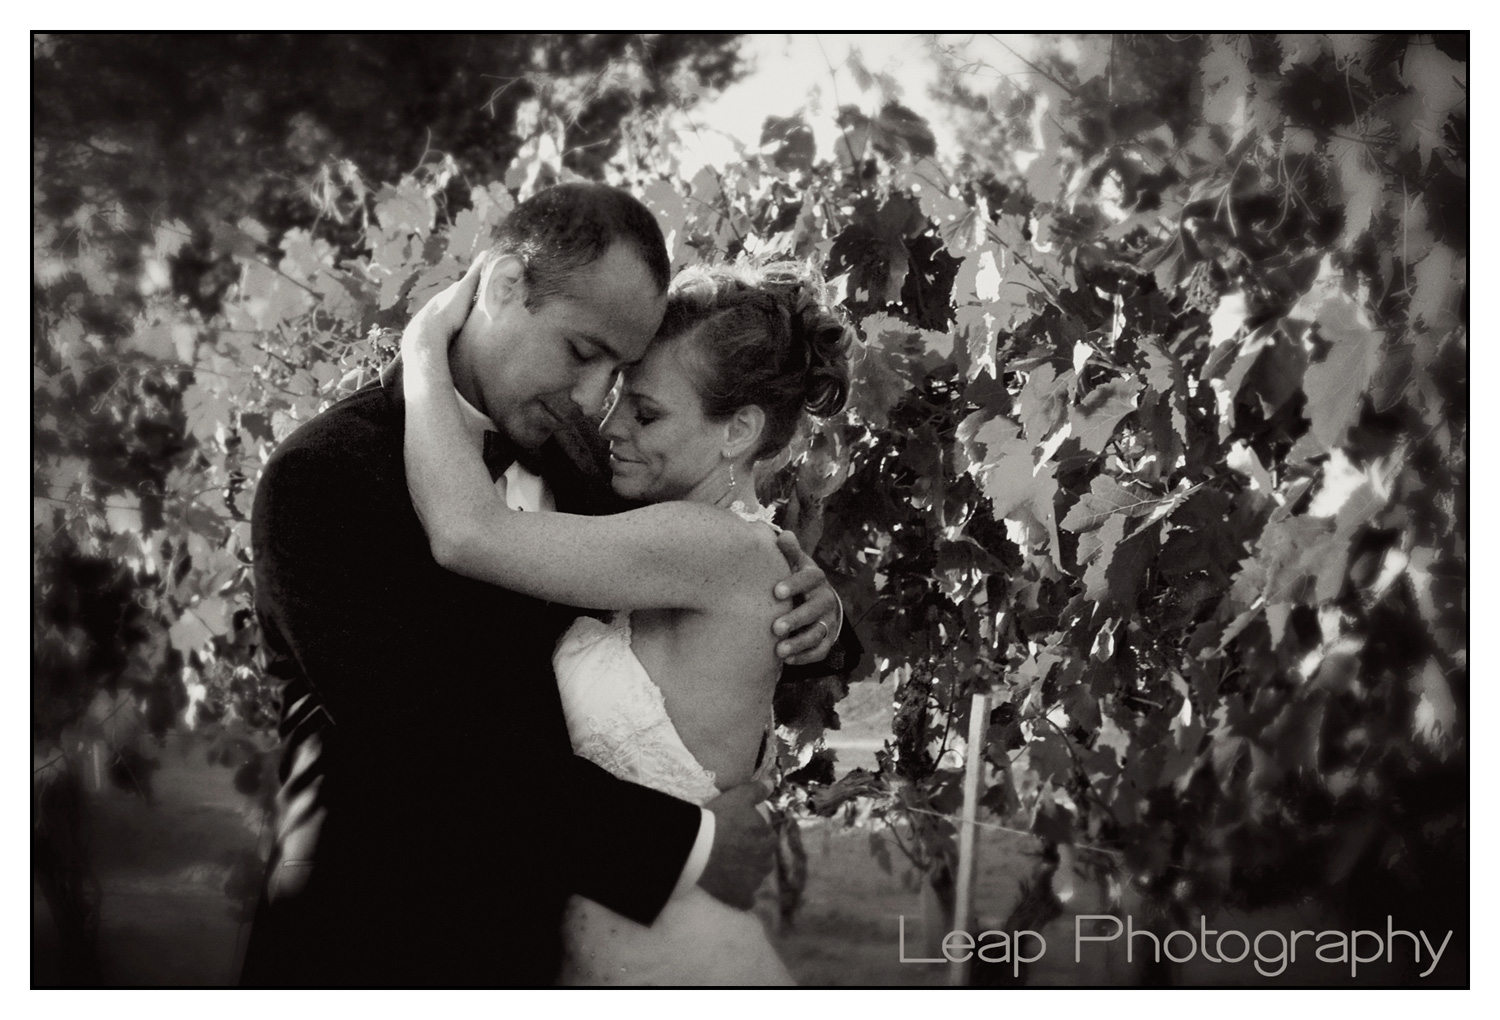 Couple embracing each other in vineyard